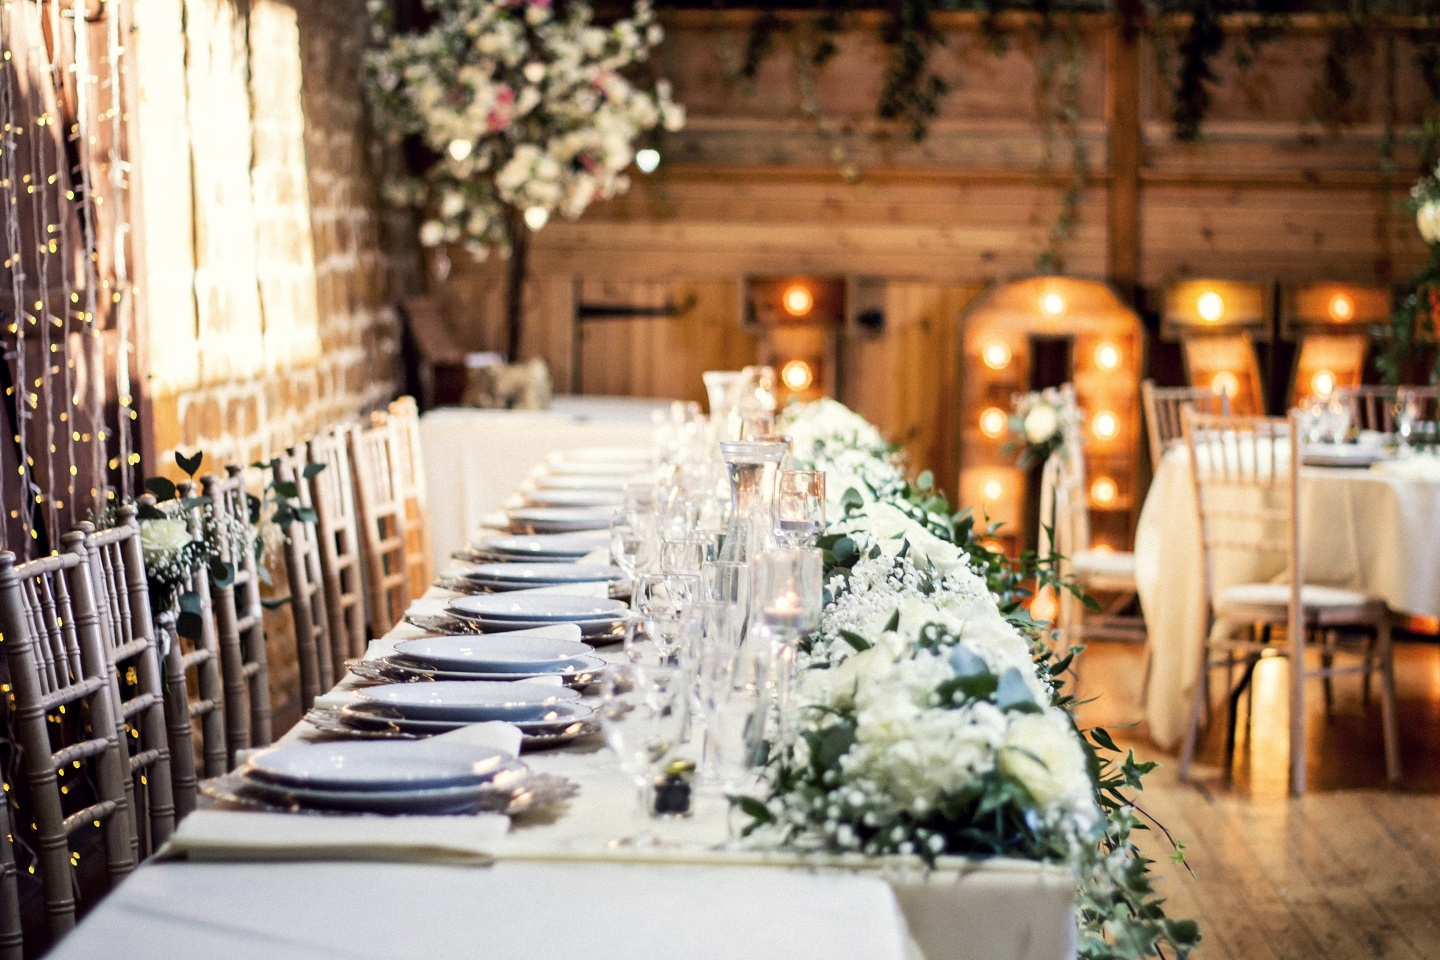 Barn wedding top table with show plates